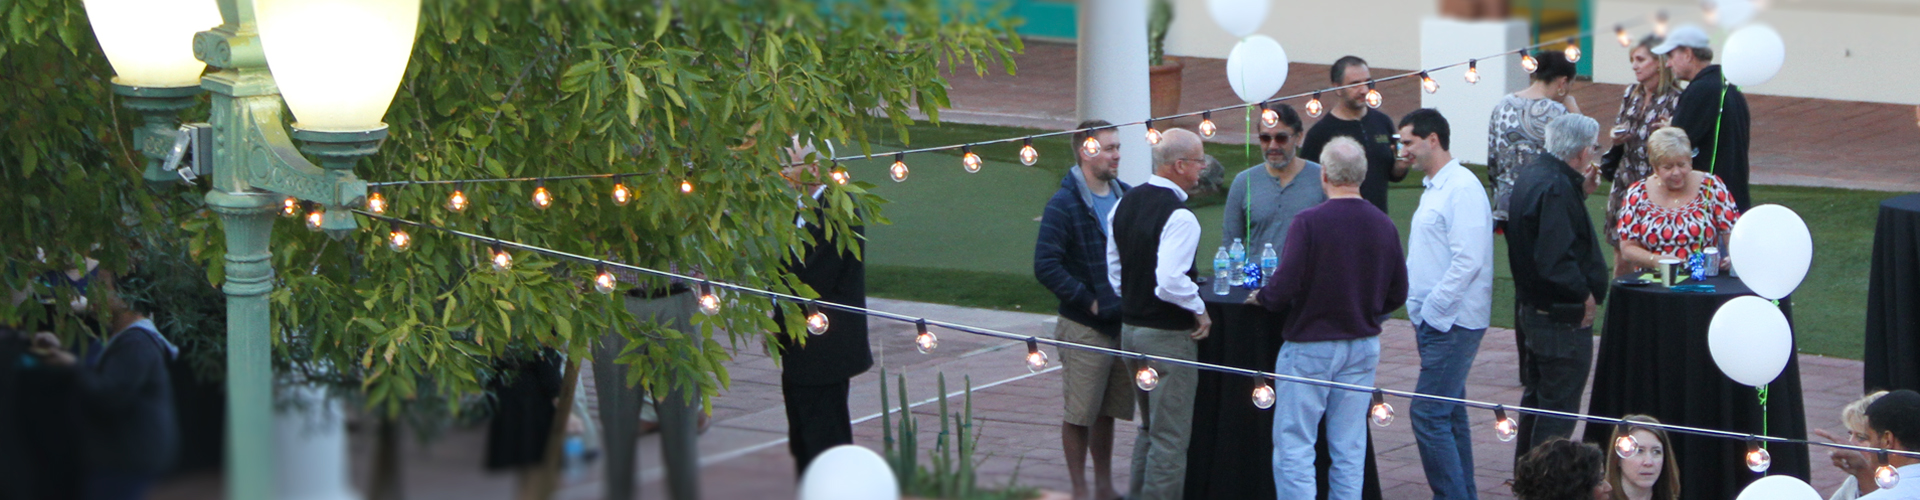 AZ Tech courtyard event